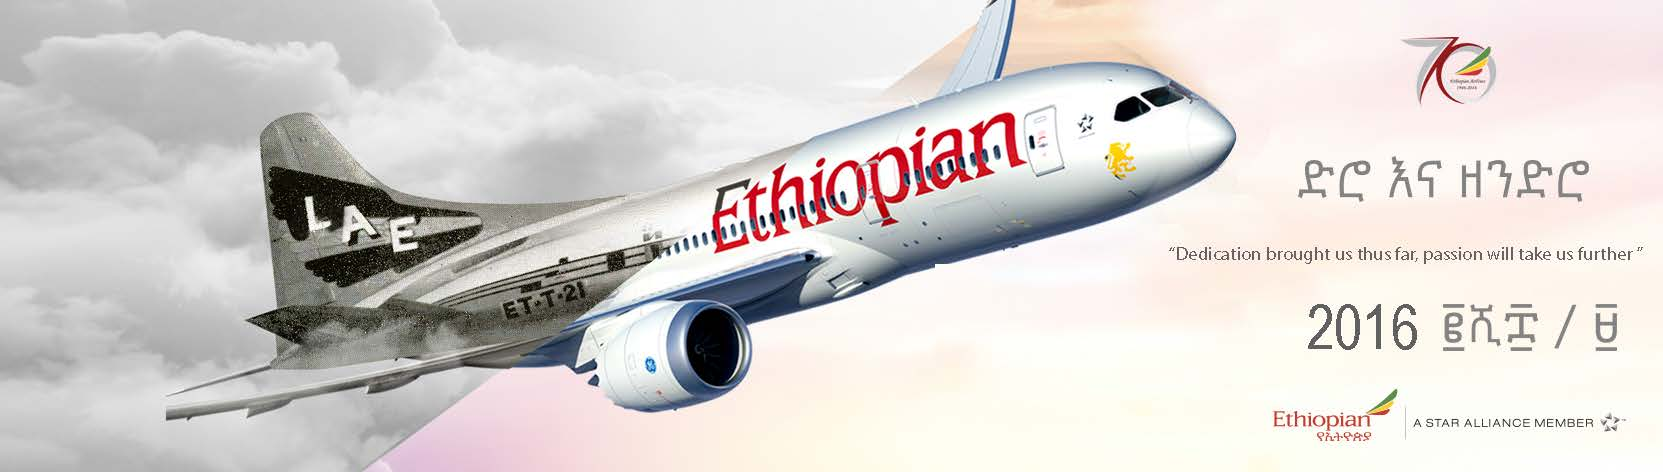 Ethiopian Airlines History